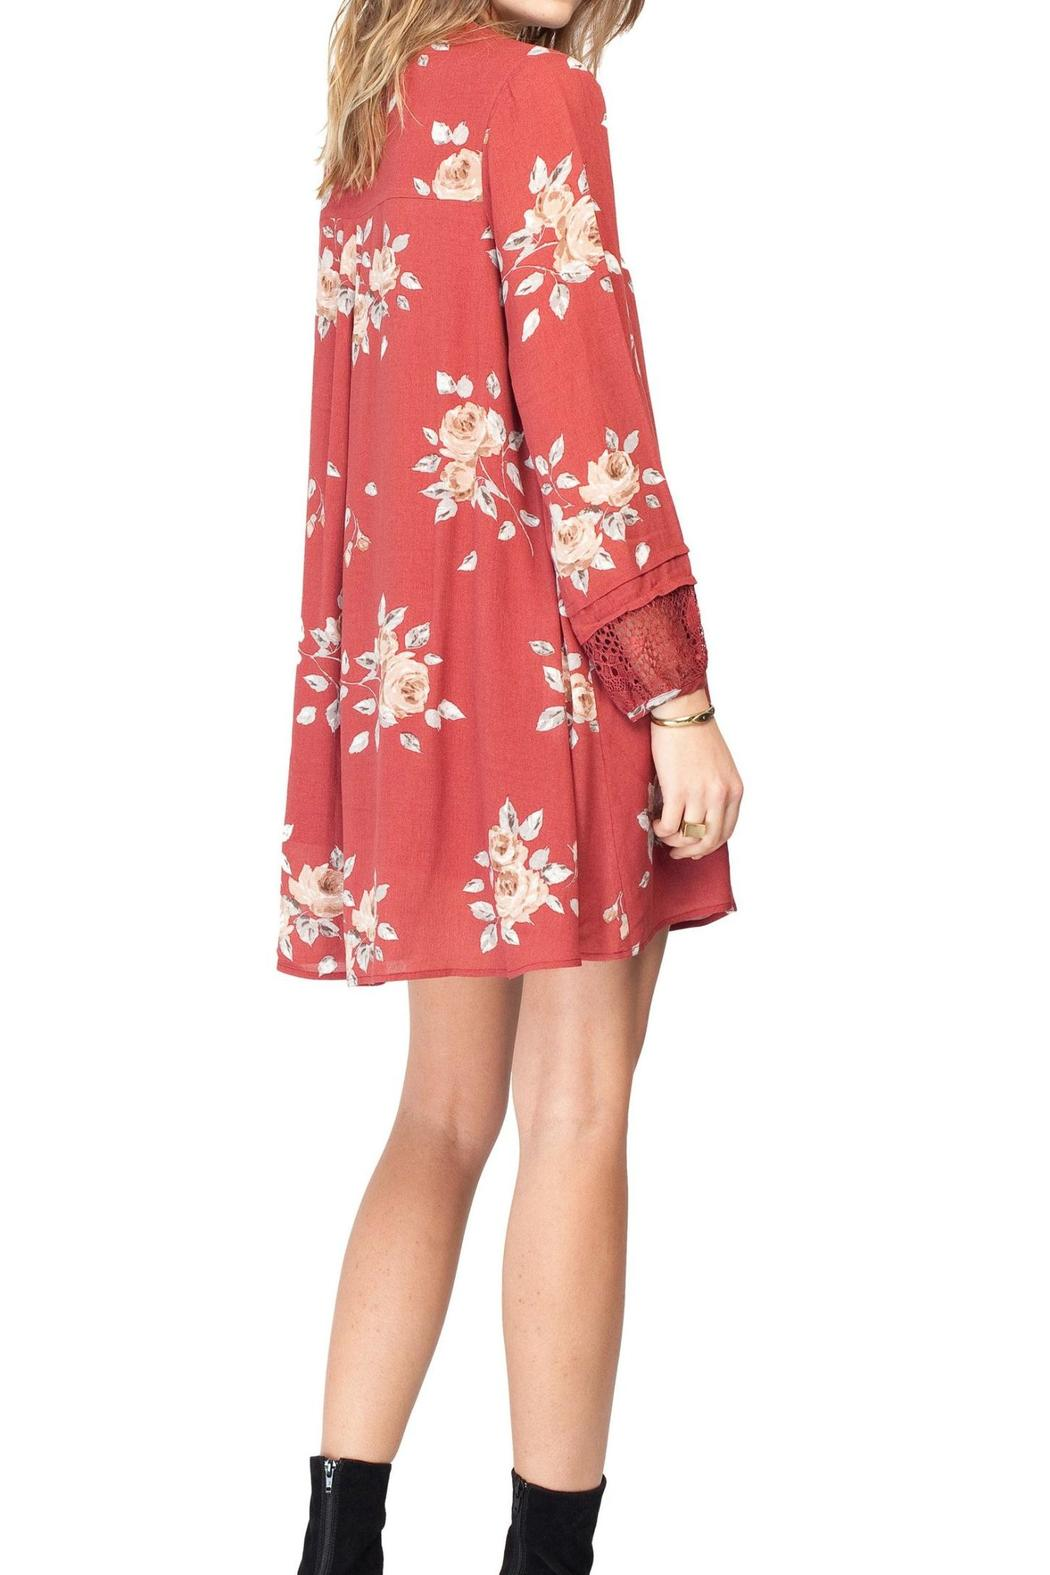 Gentle Fawn Utopia Dress - Front Full Image